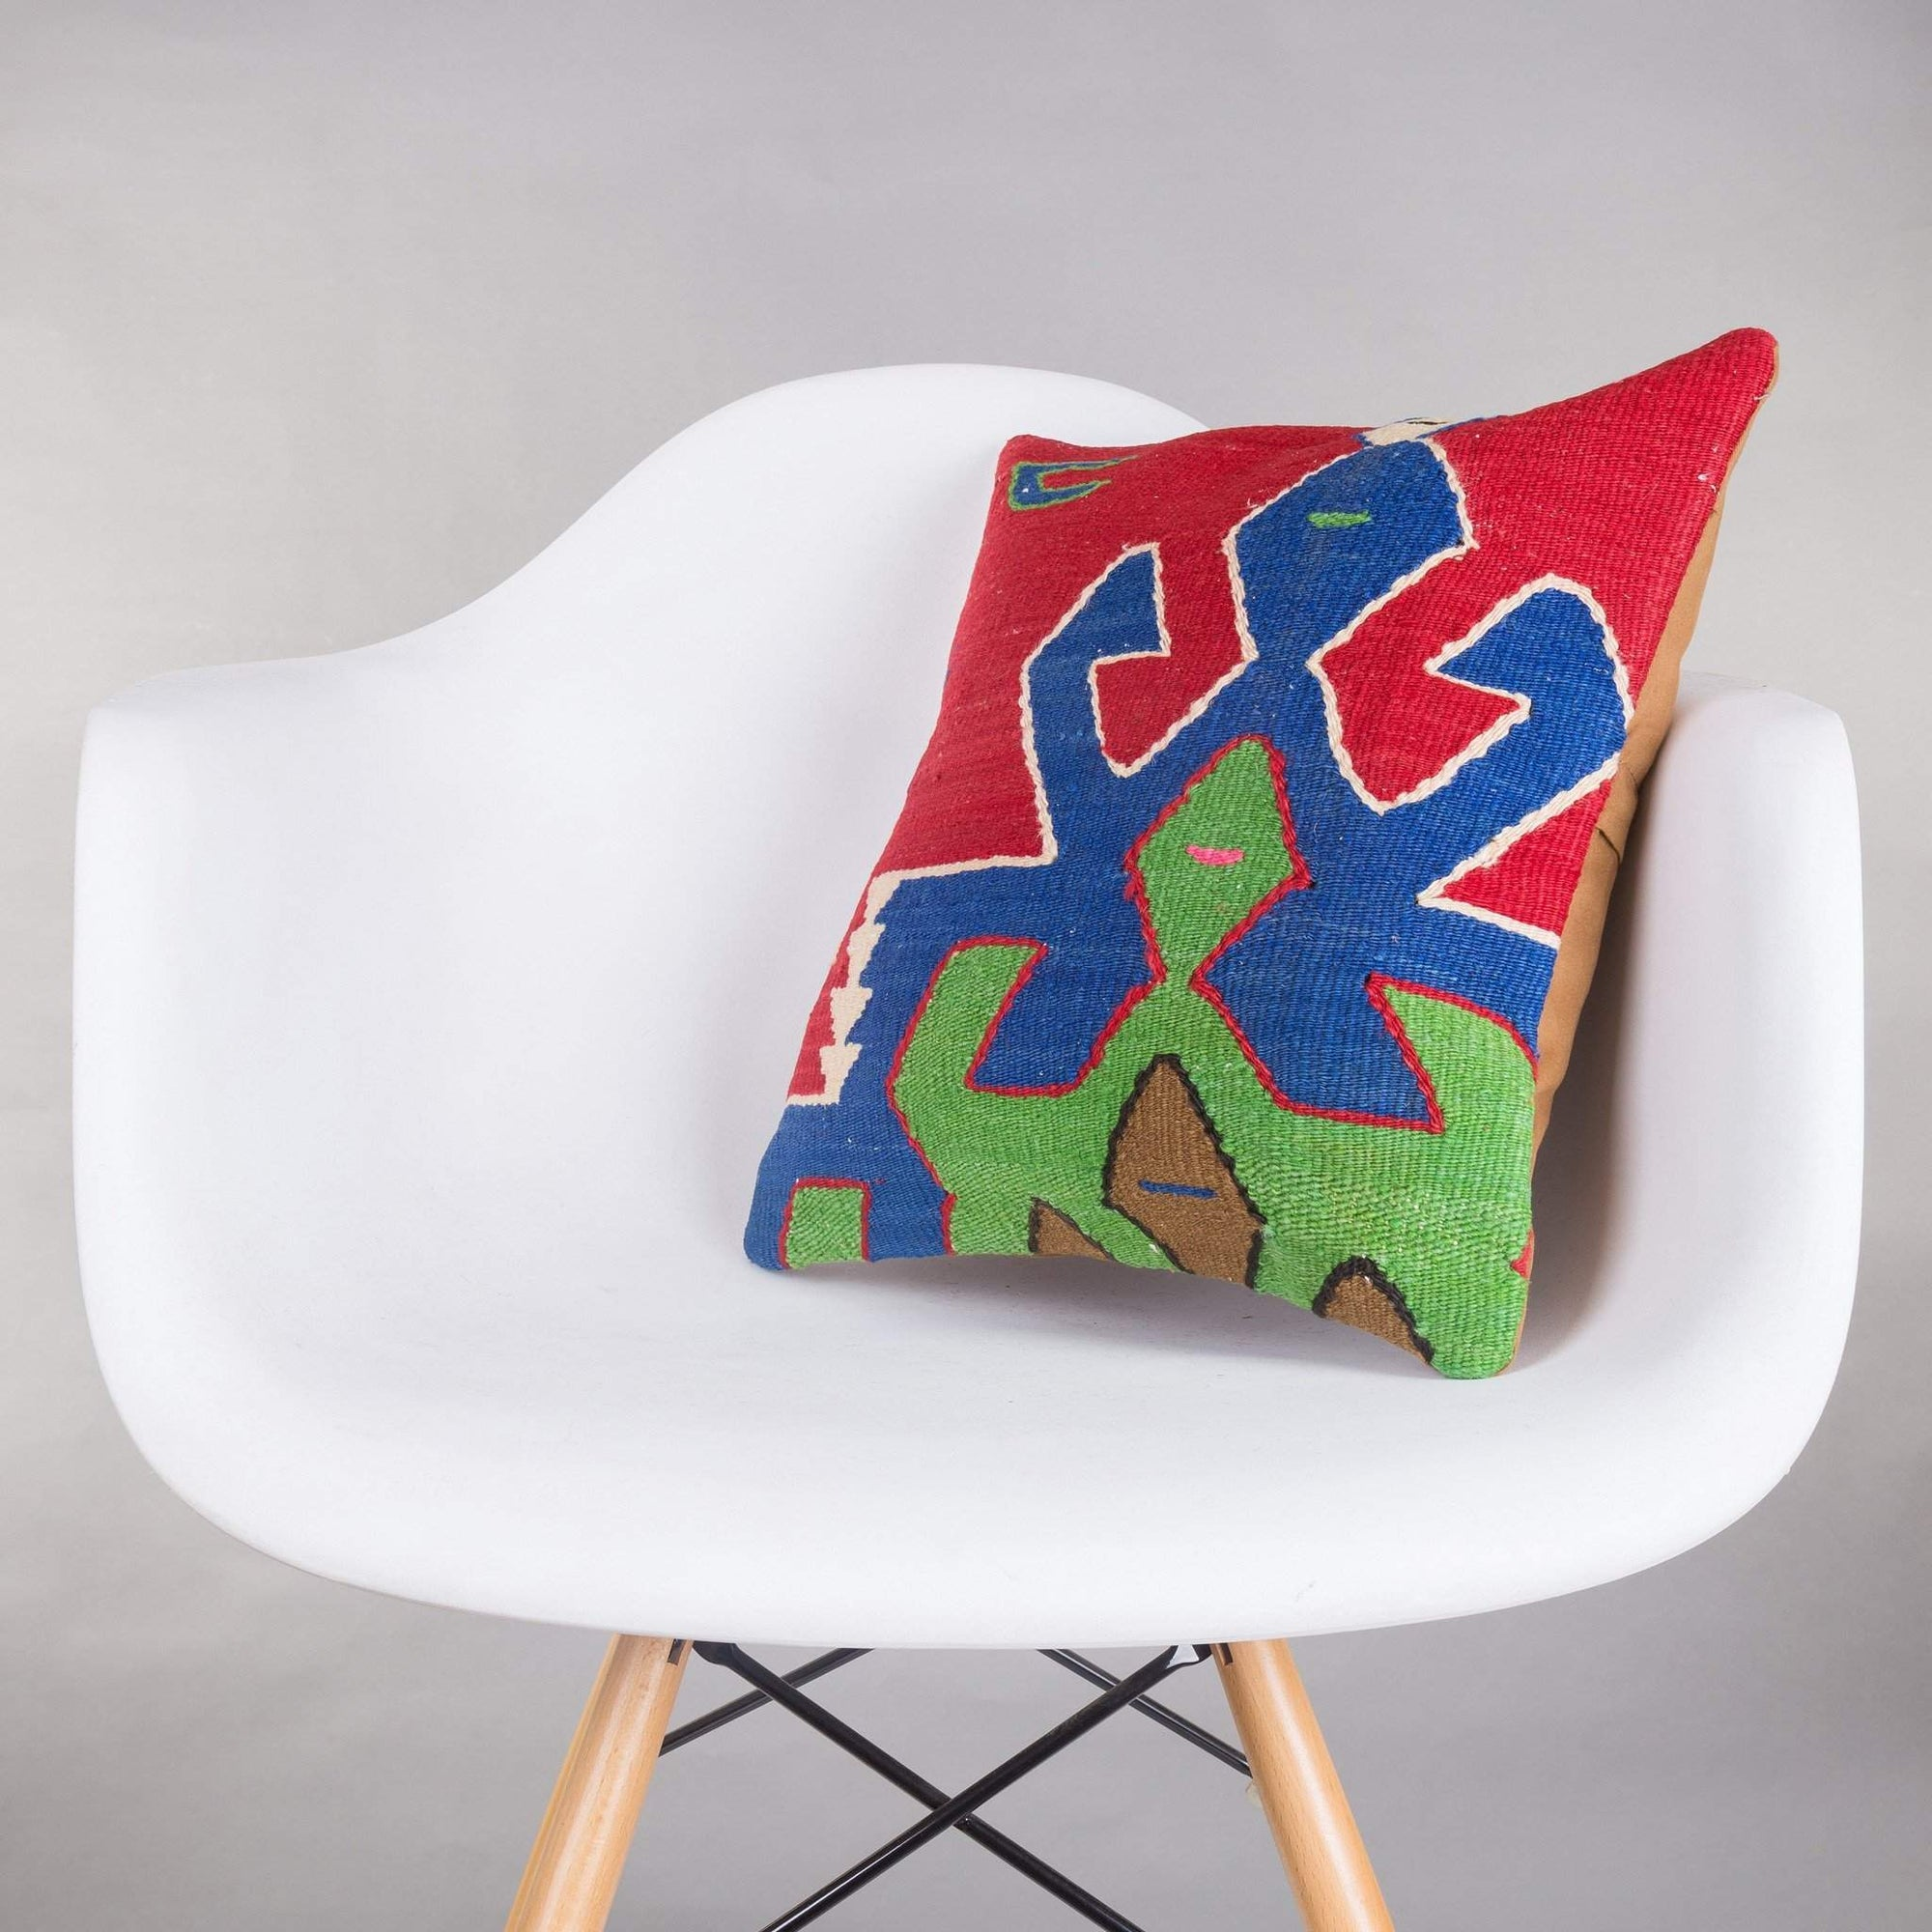 Geometric Multi Color Kilim Pillow Cover 16x16 5199